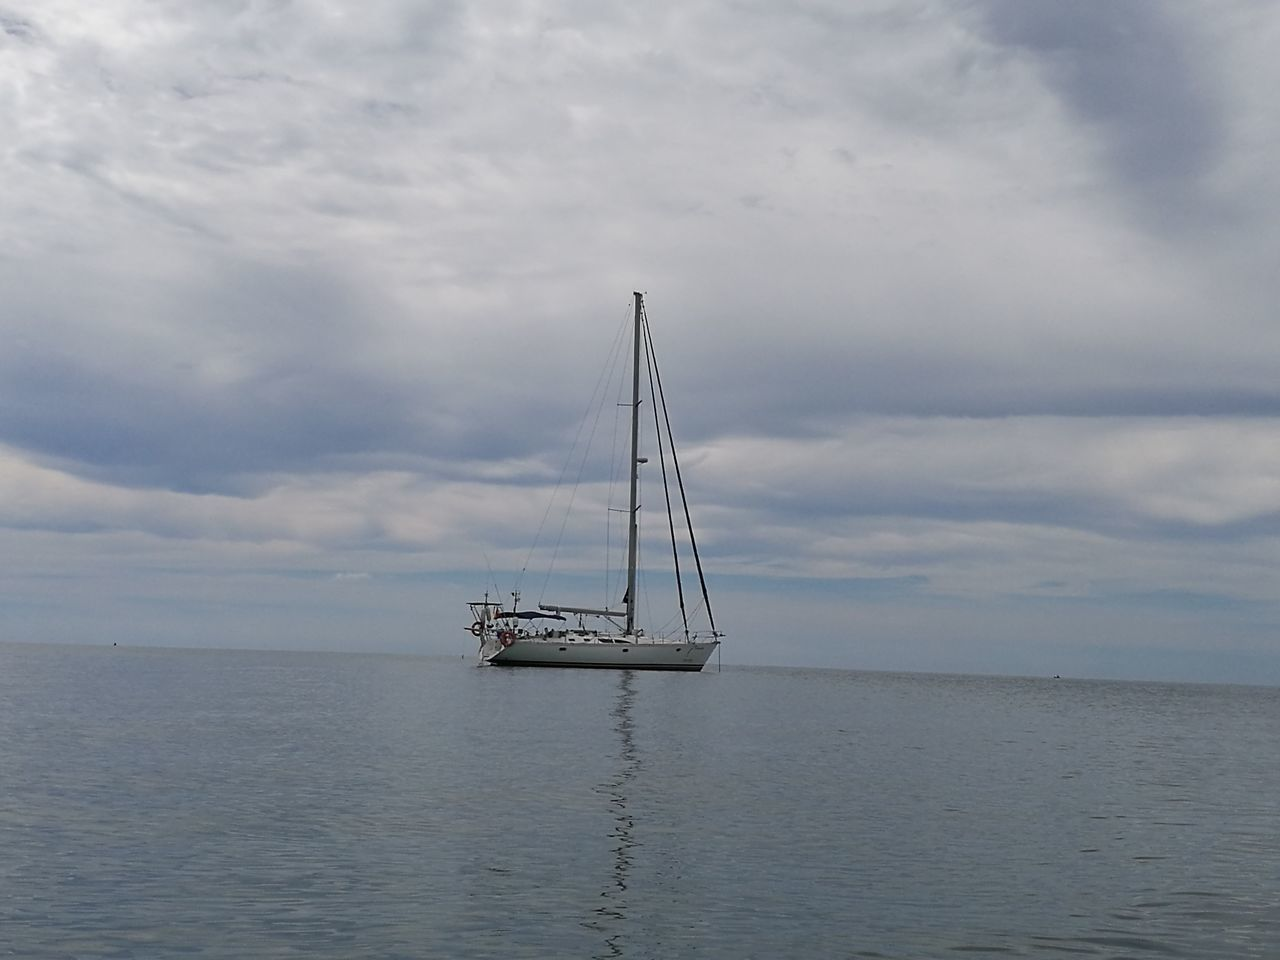 water, sky, nautical vessel, cloud - sky, sea, transportation, mode of transport, waterfront, nature, beauty in nature, no people, tranquility, mast, outdoors, day, scenics, moored, sailboat, horizon over water, sailing